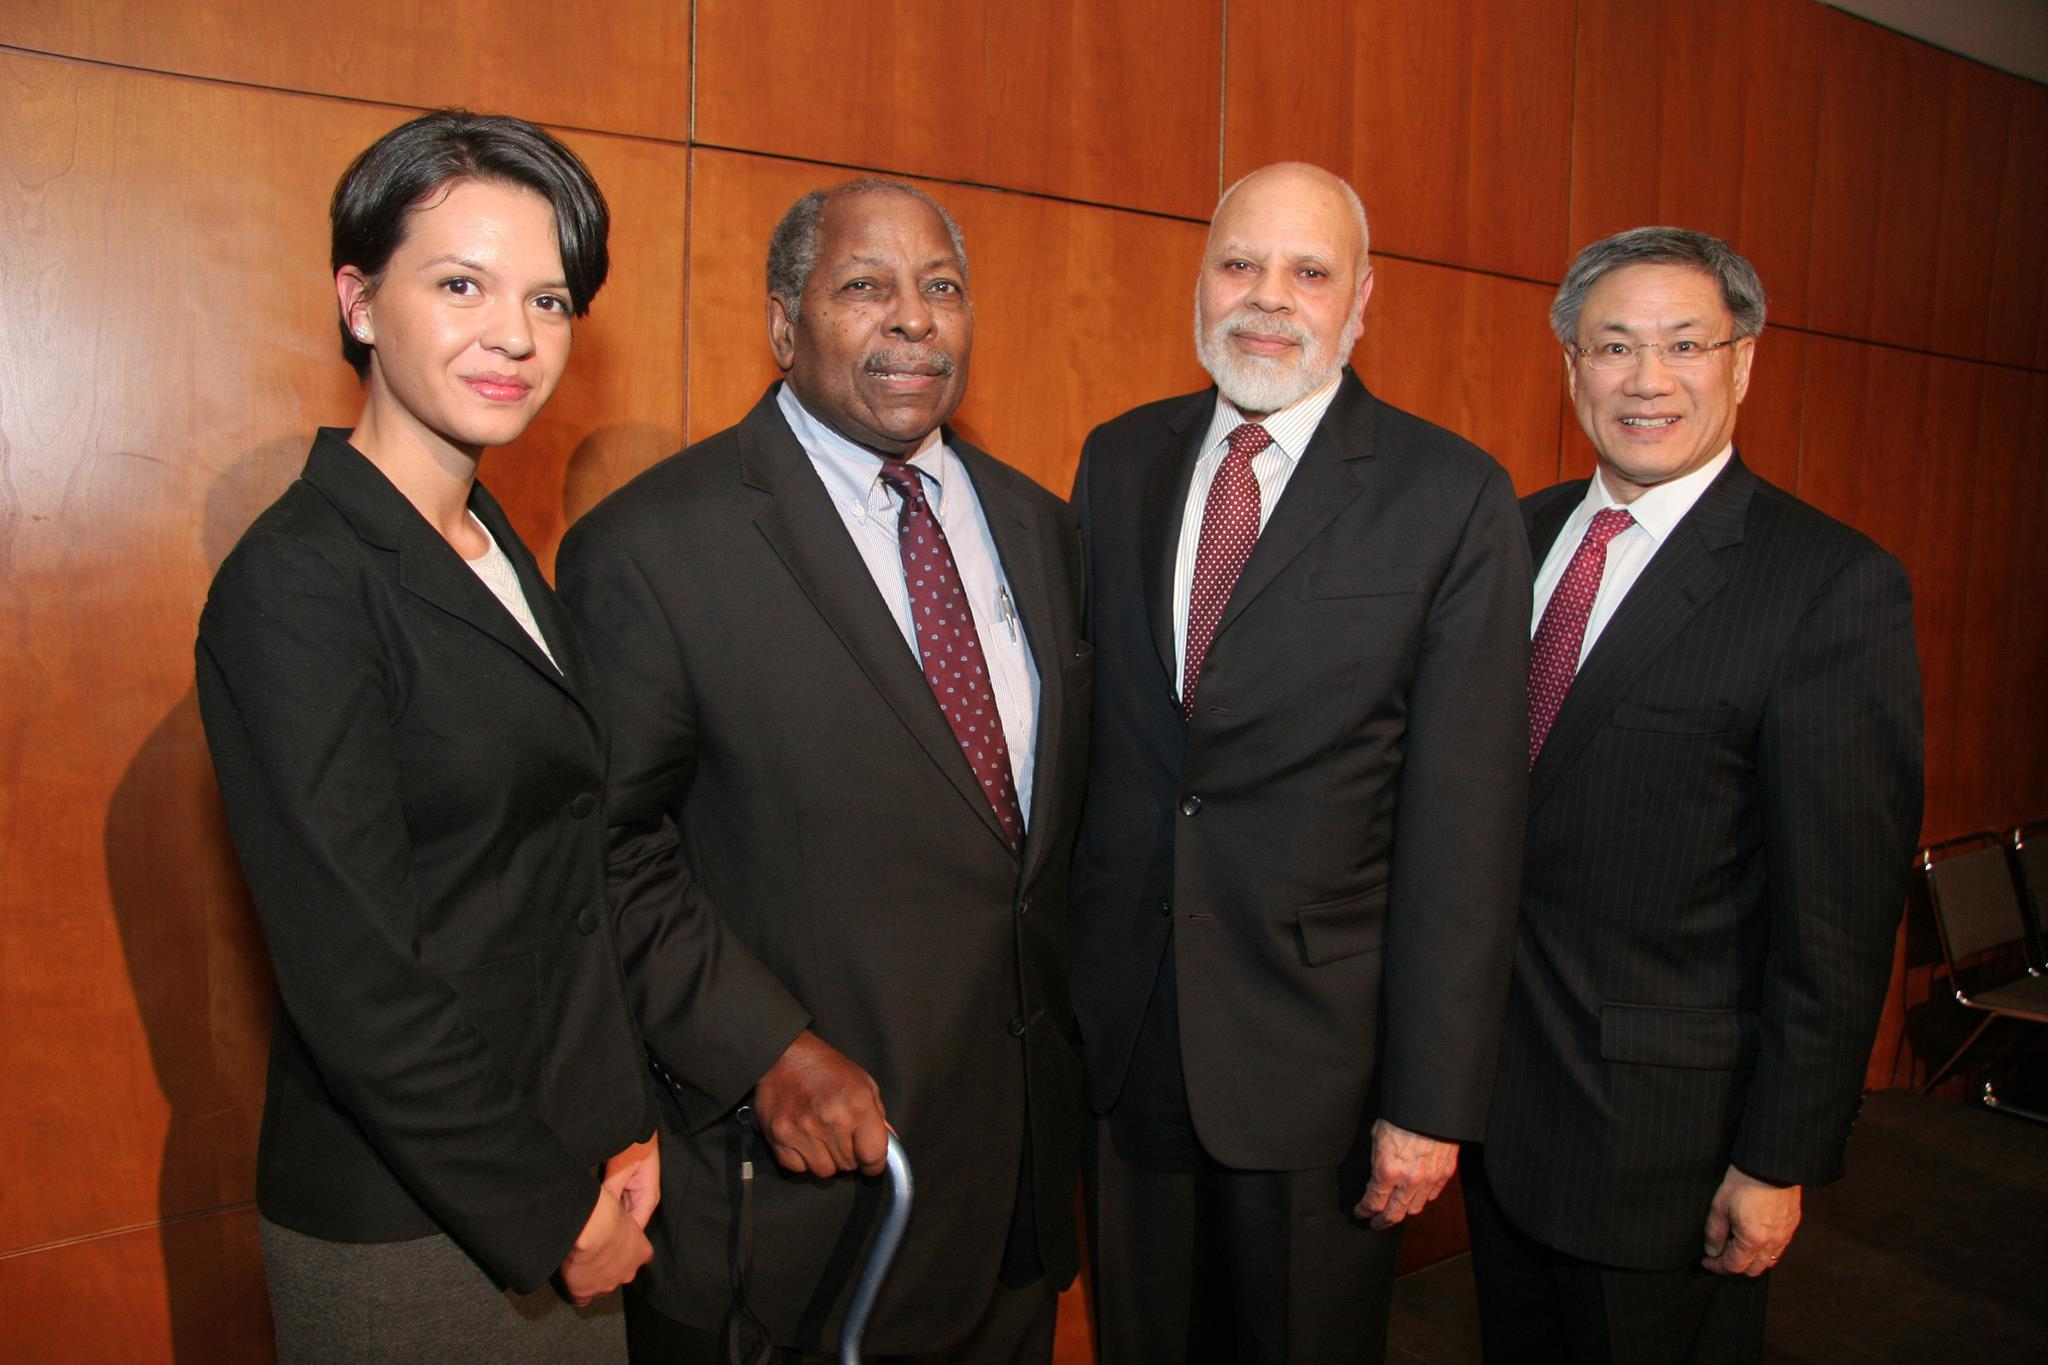 photo of 3 men and 1 woman, prior Corporate Counsel Award recipient